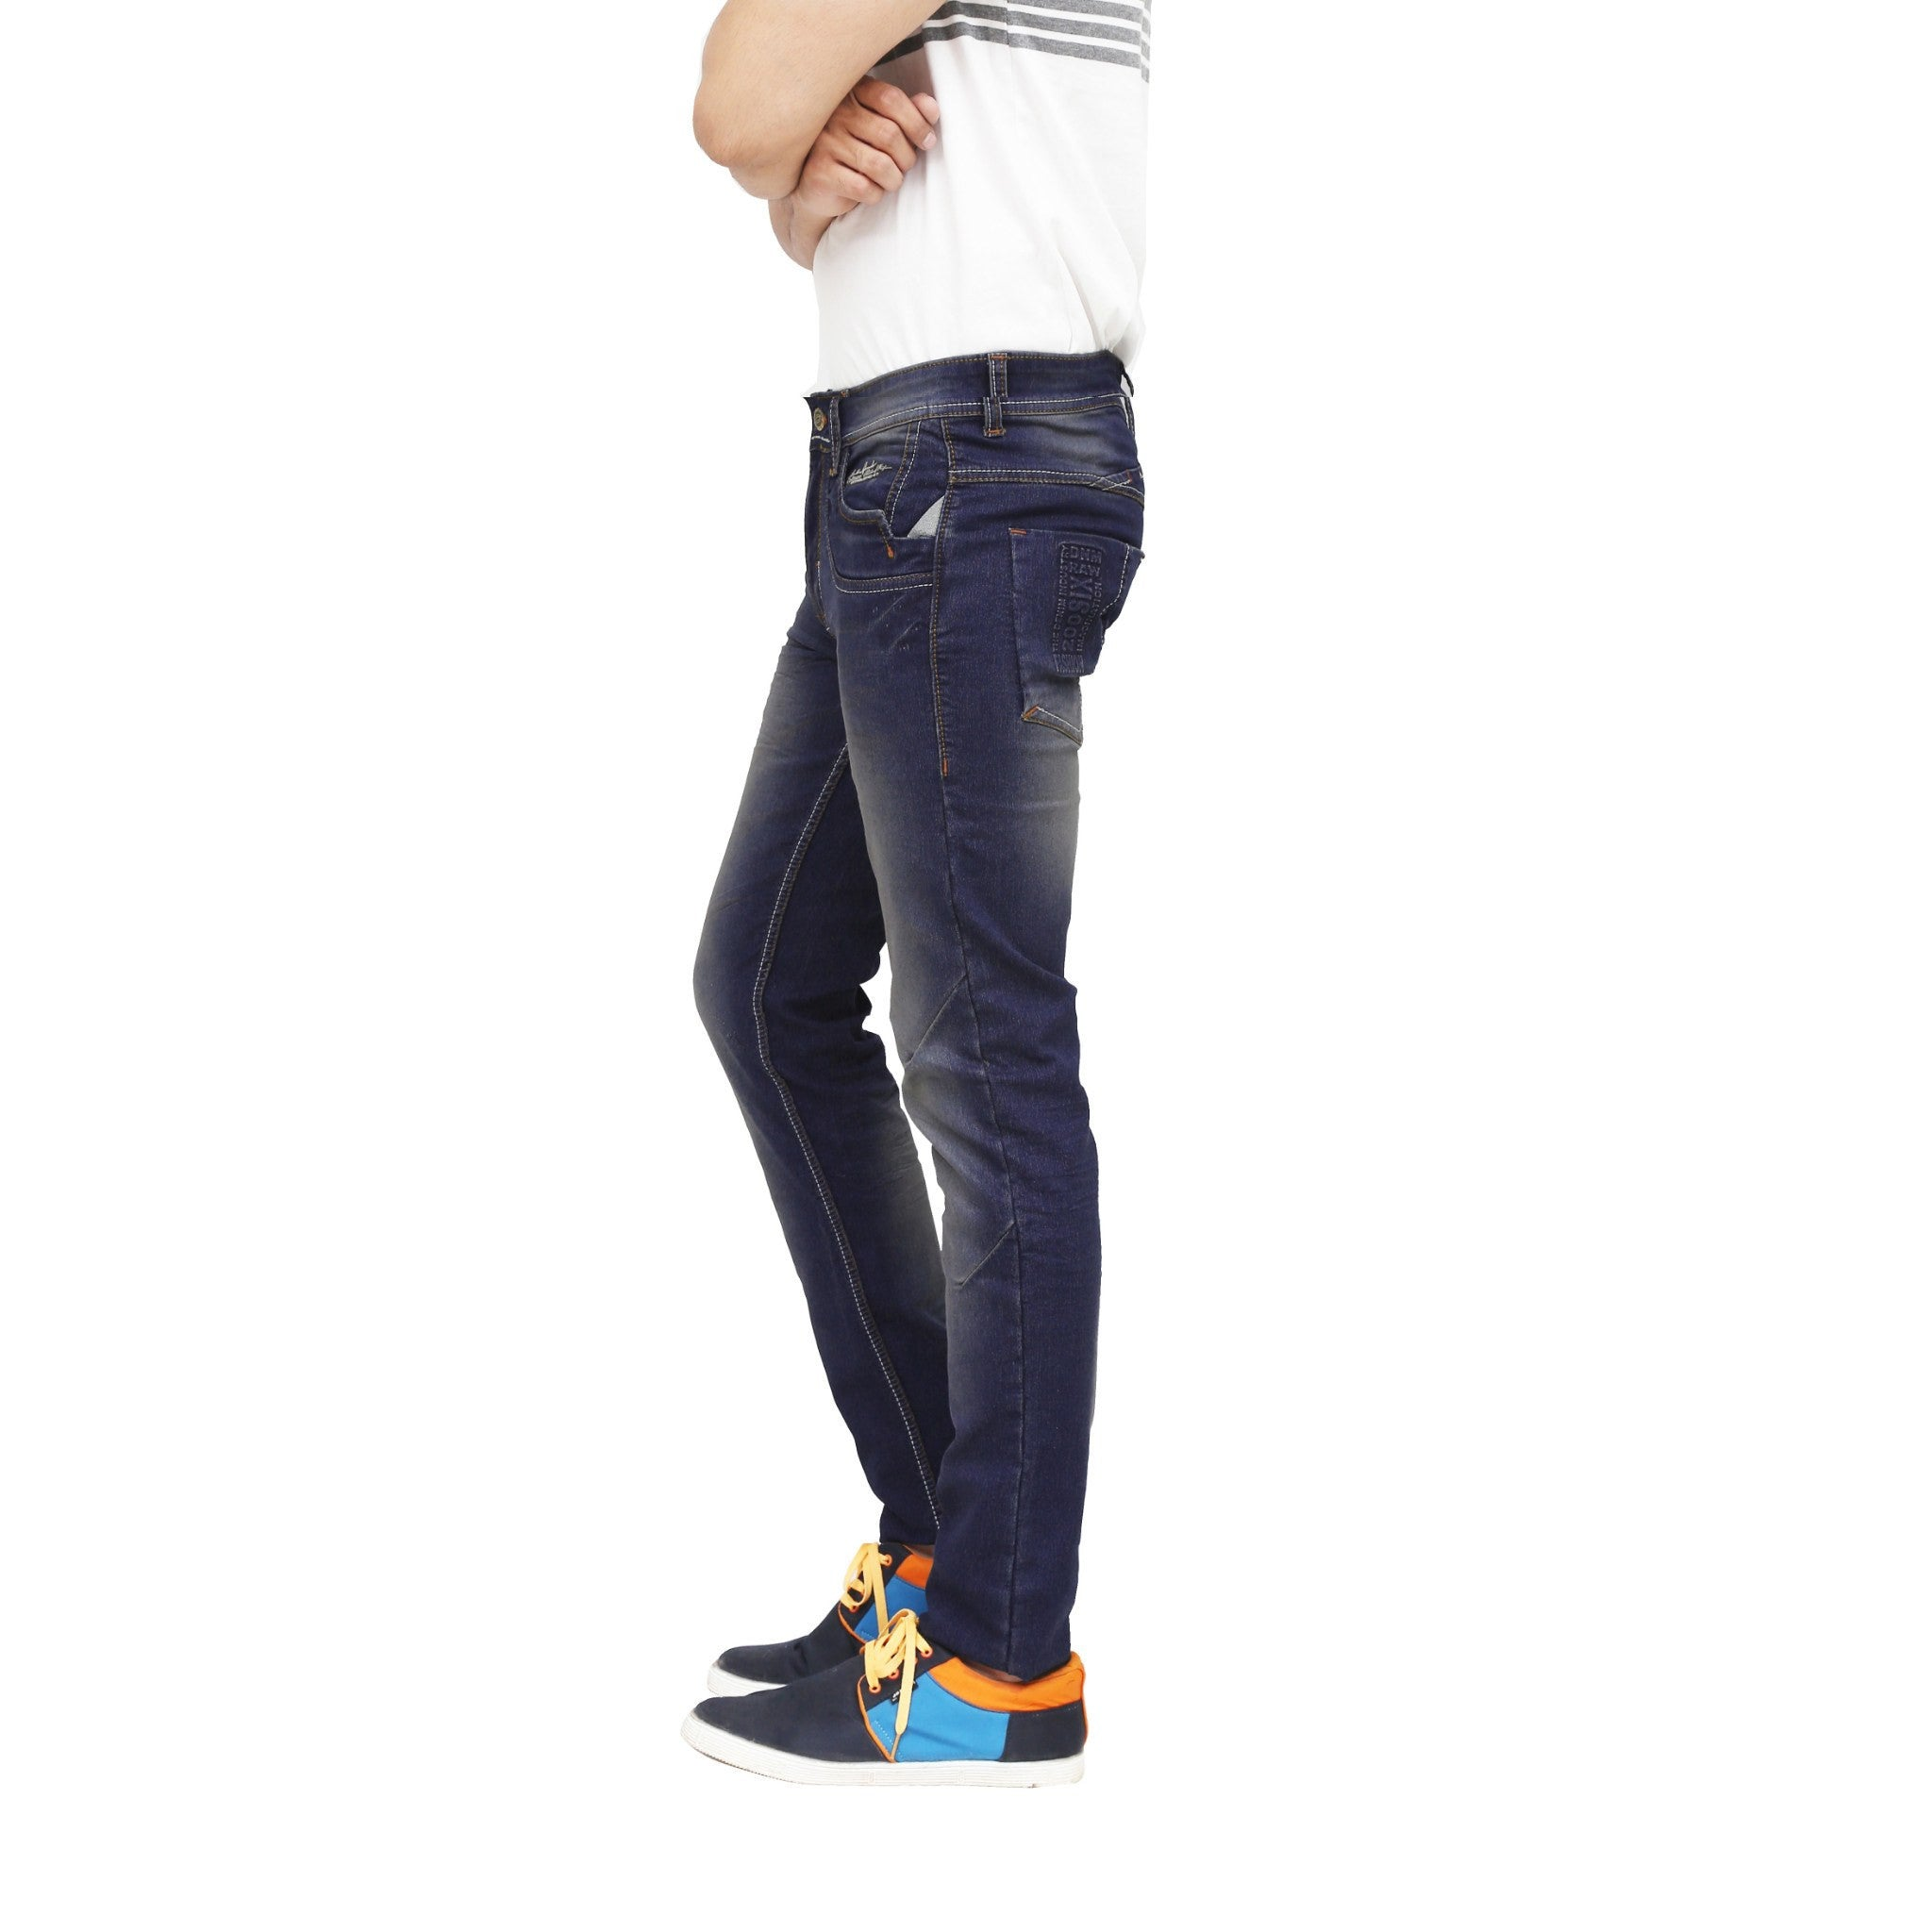 Sooty Black Stretchable Jeans left side view